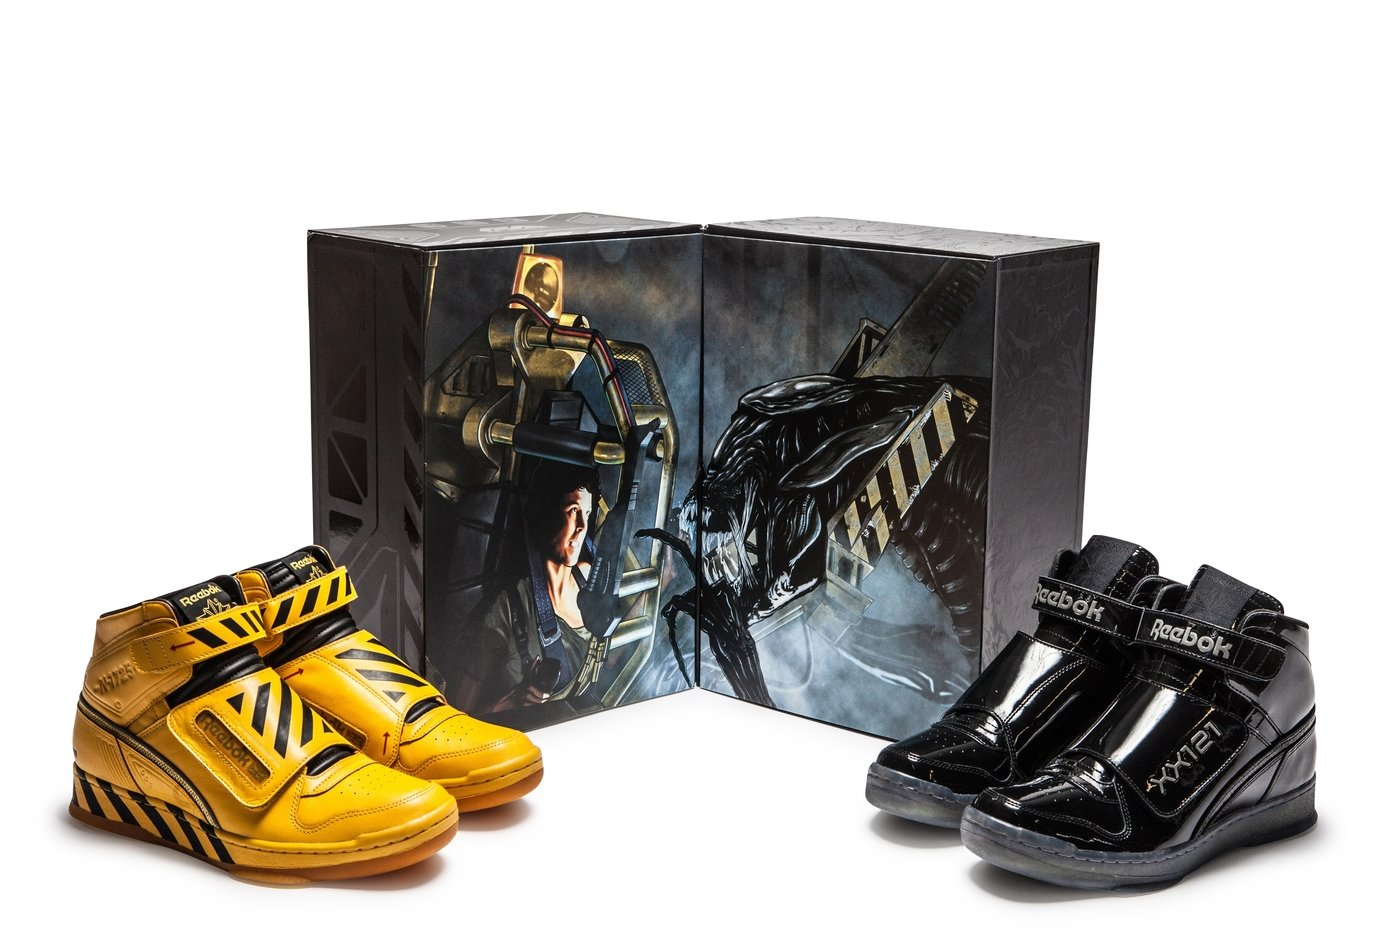 Reebok Alien Stomper Final Battle pack by Chris Hill (Chrisco.) at ... d4d14d545